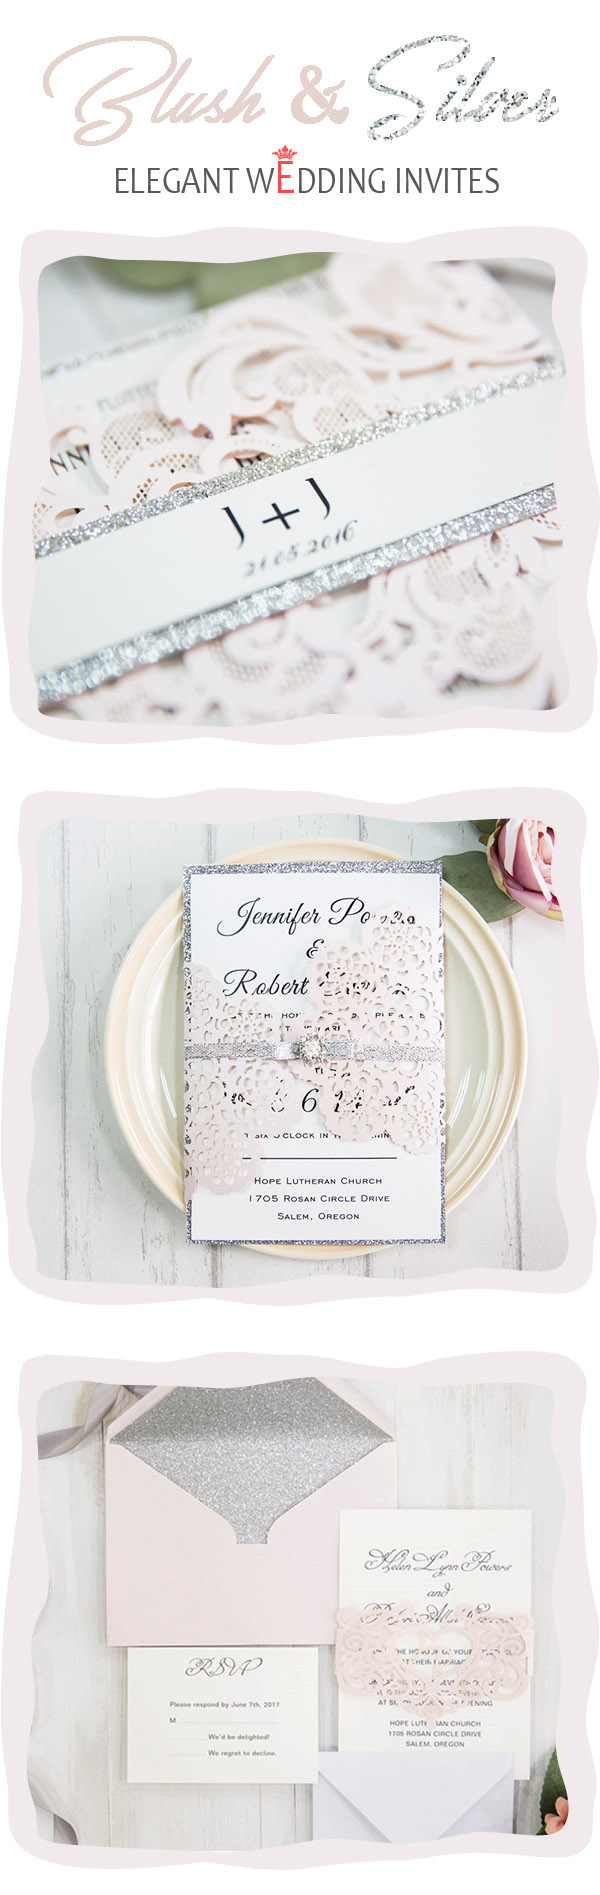 Stunning pink wedding ideas and invitations with gold silver blush pink and silver grey elegant wedding invitations for romantic brides monicamarmolfo Choice Image